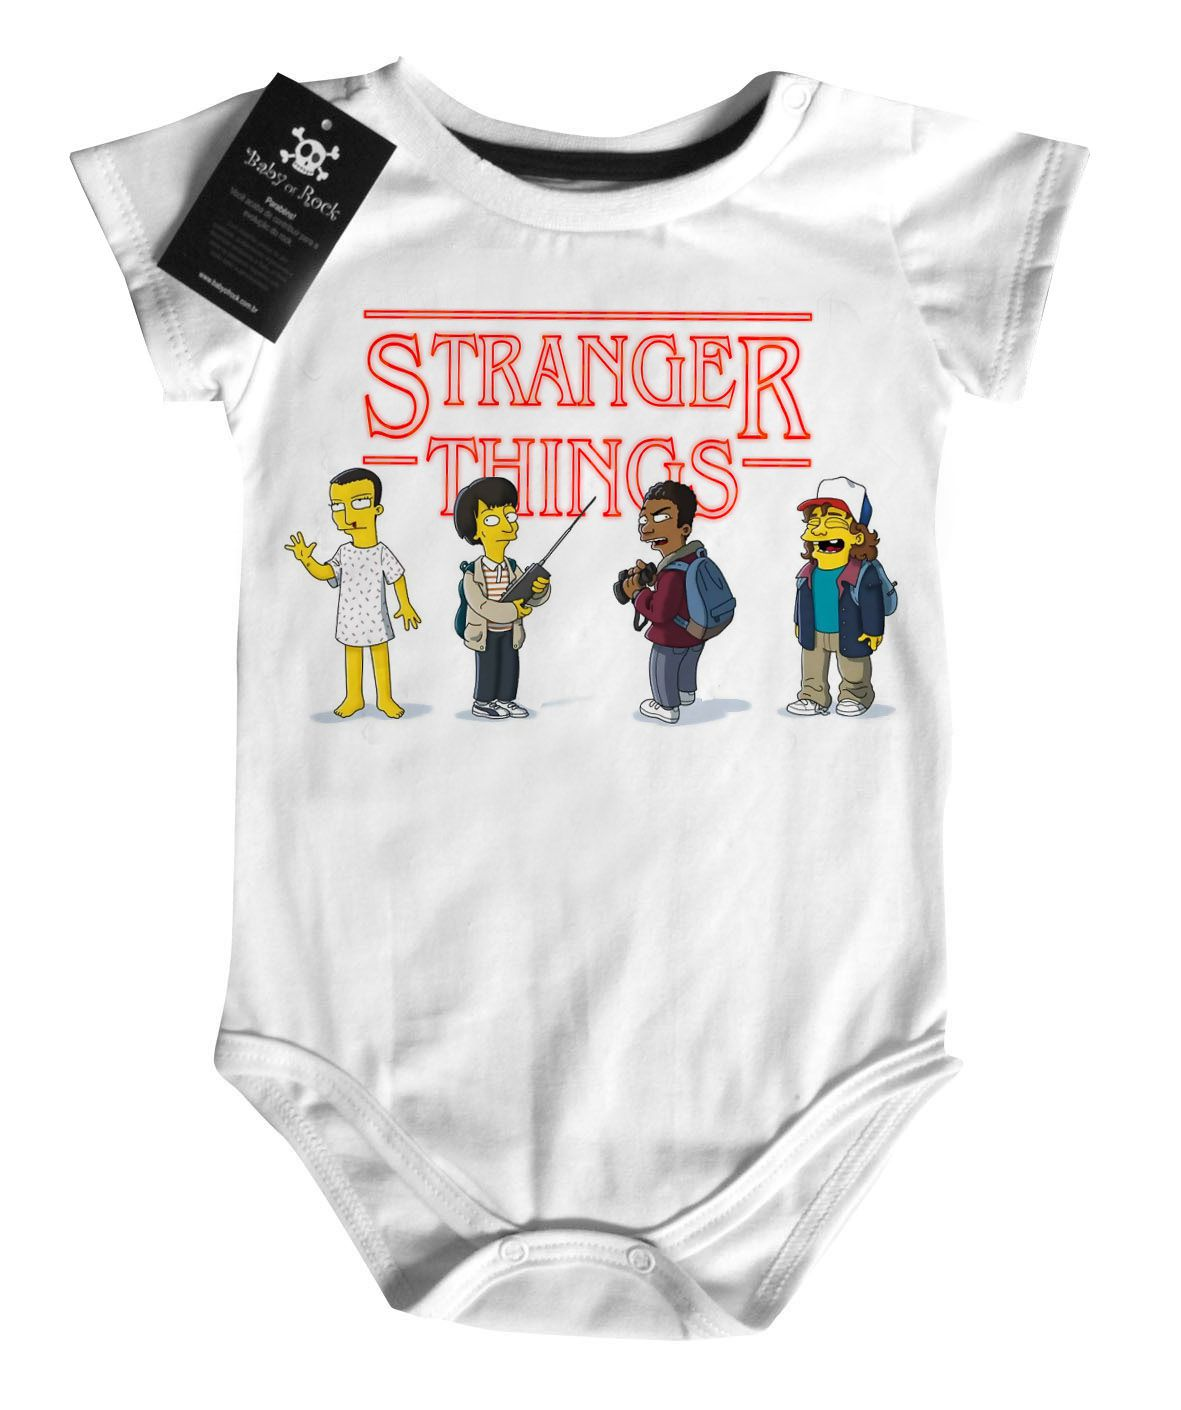 Body Series Tv  Stranger Things Simpsons -  White  - Baby Monster - Body Bebe